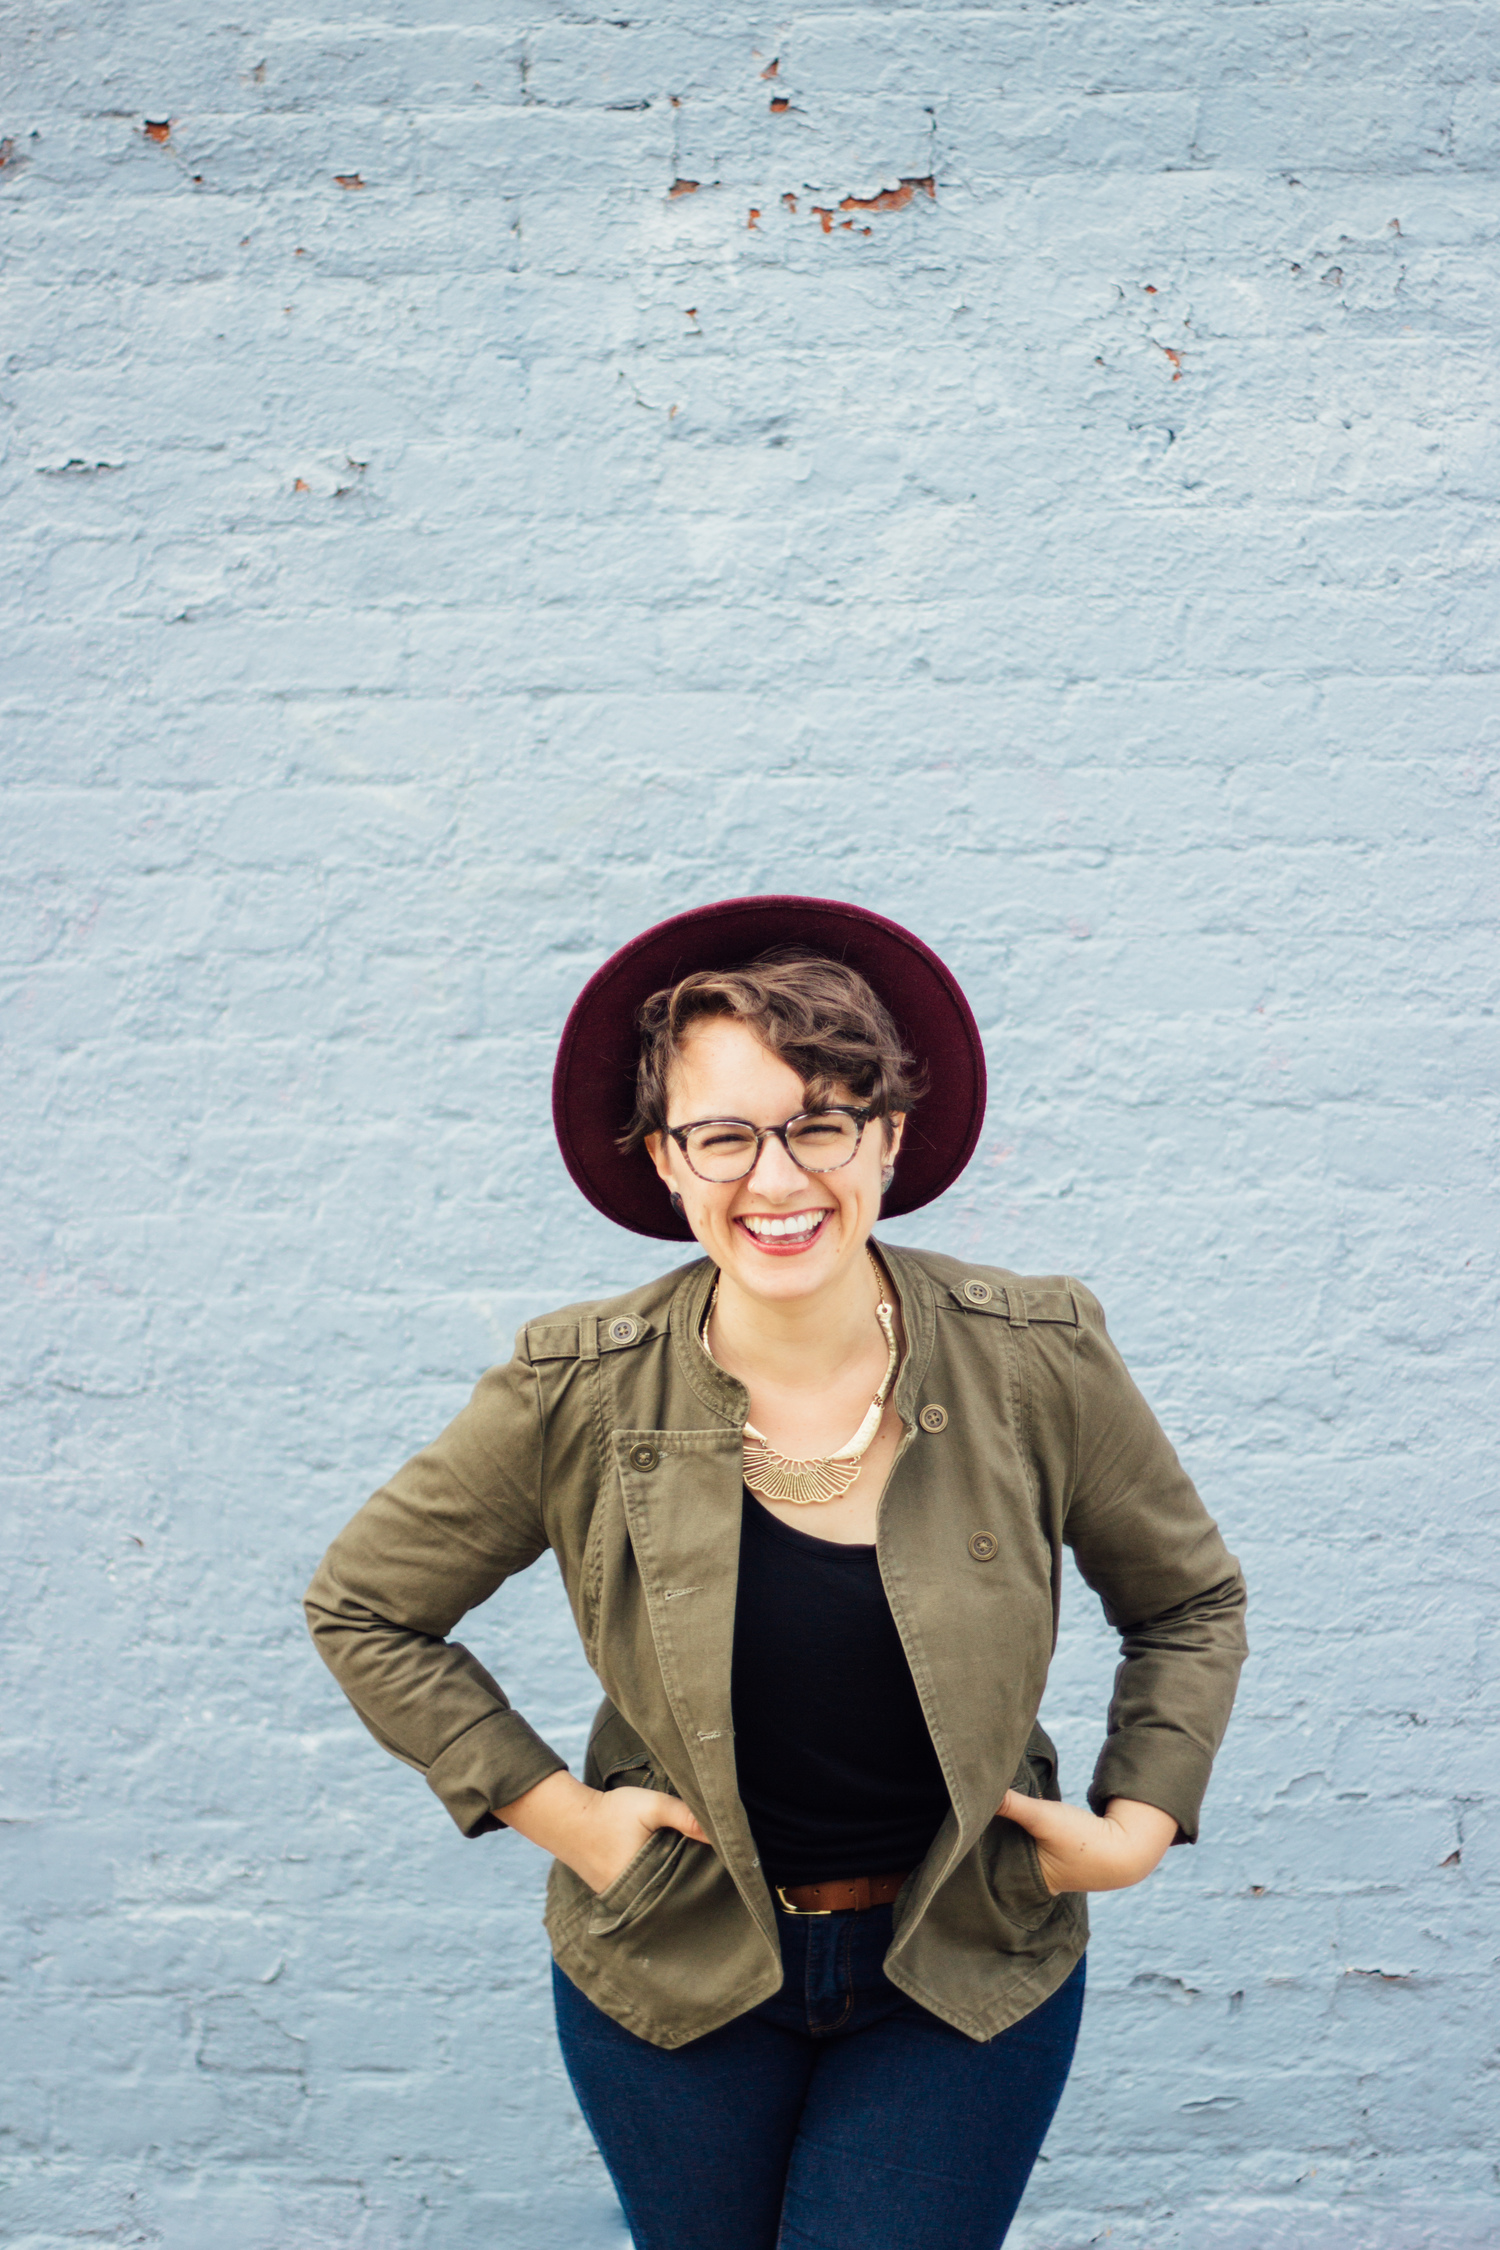 Hey! I'm Emily Lewin, Founder of the Bright Ideas Collective